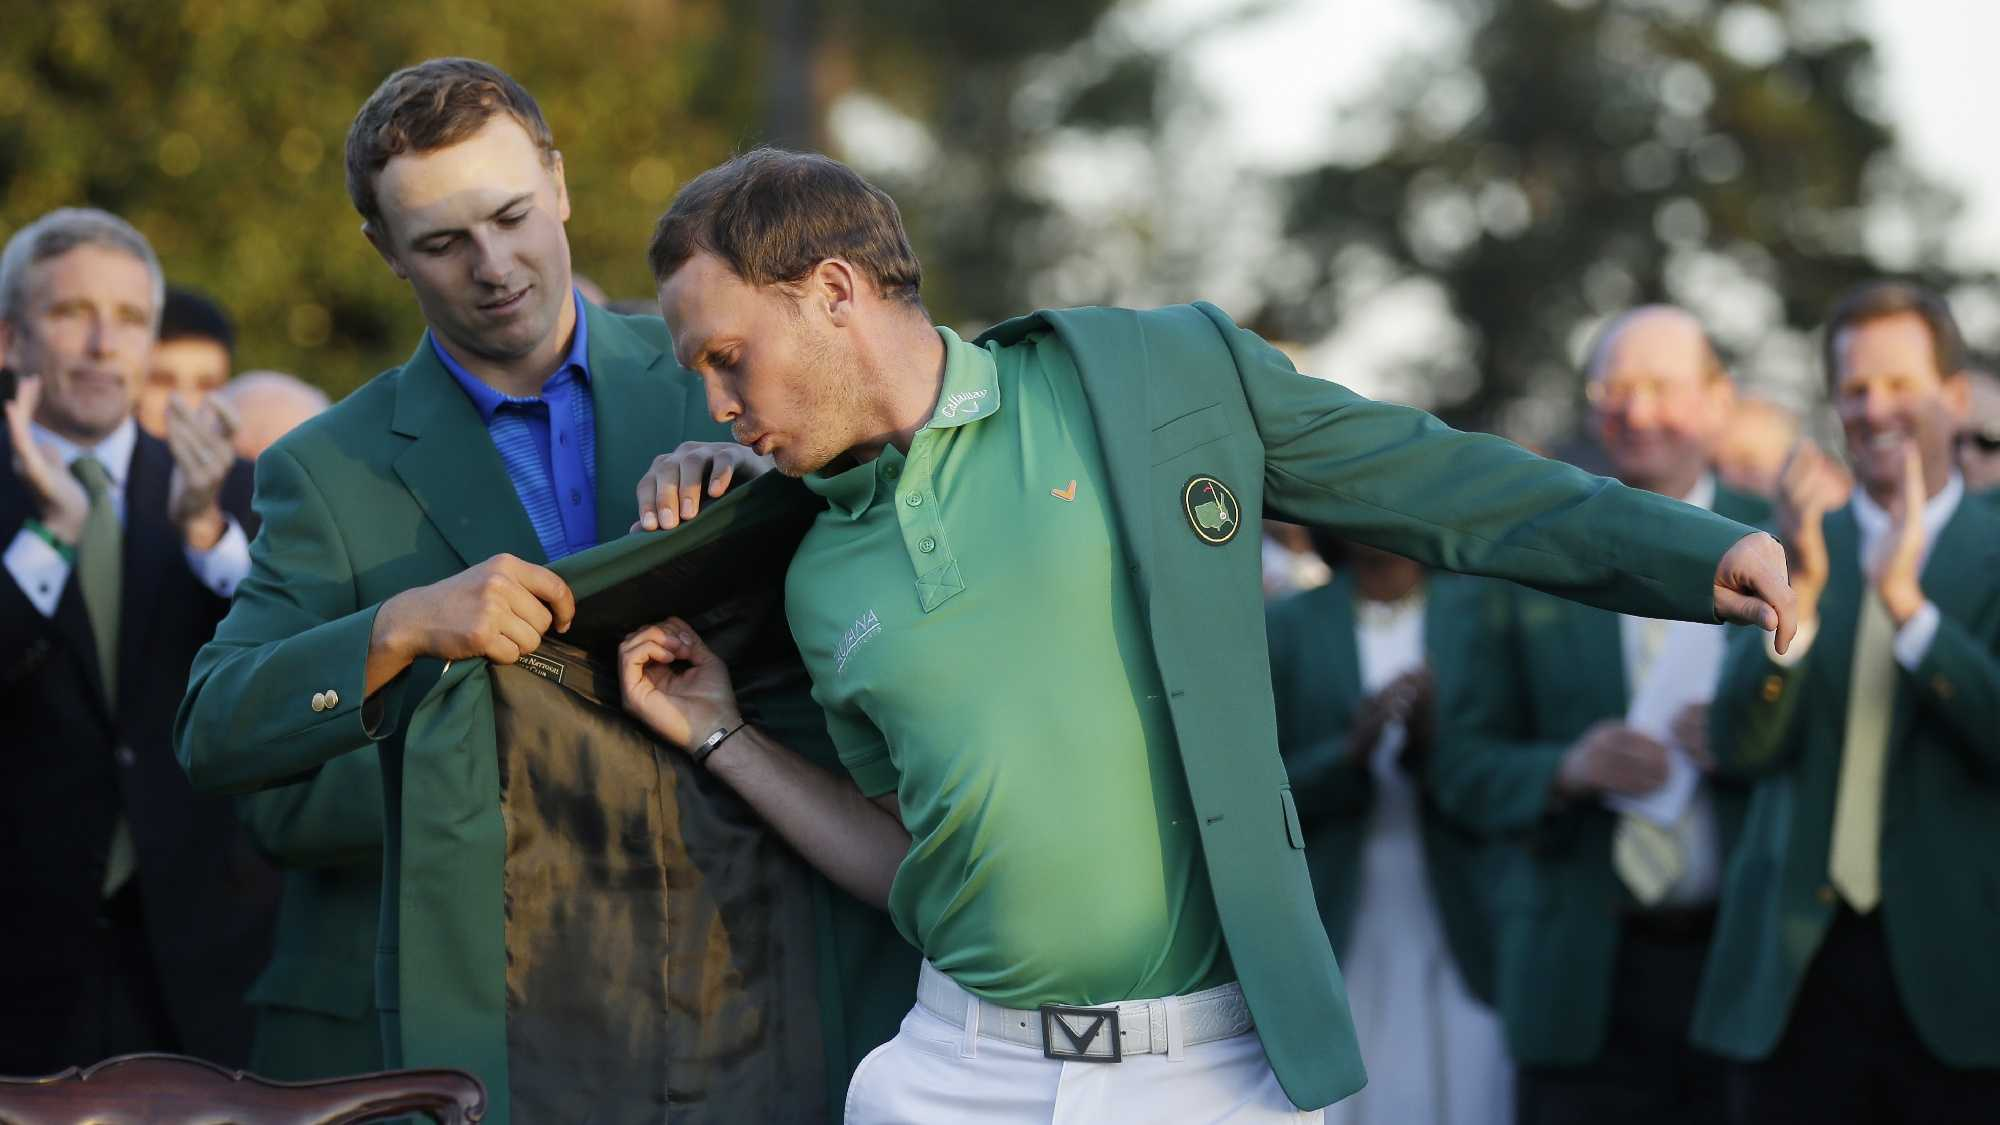 Defending champion Jordan Spieth, left, helps 2016 Masters champion Danny Willett, of England, put on his green jacket following the final round of the Masters golf tournament Sunday, April 10, 2016, in Augusta, Ga.